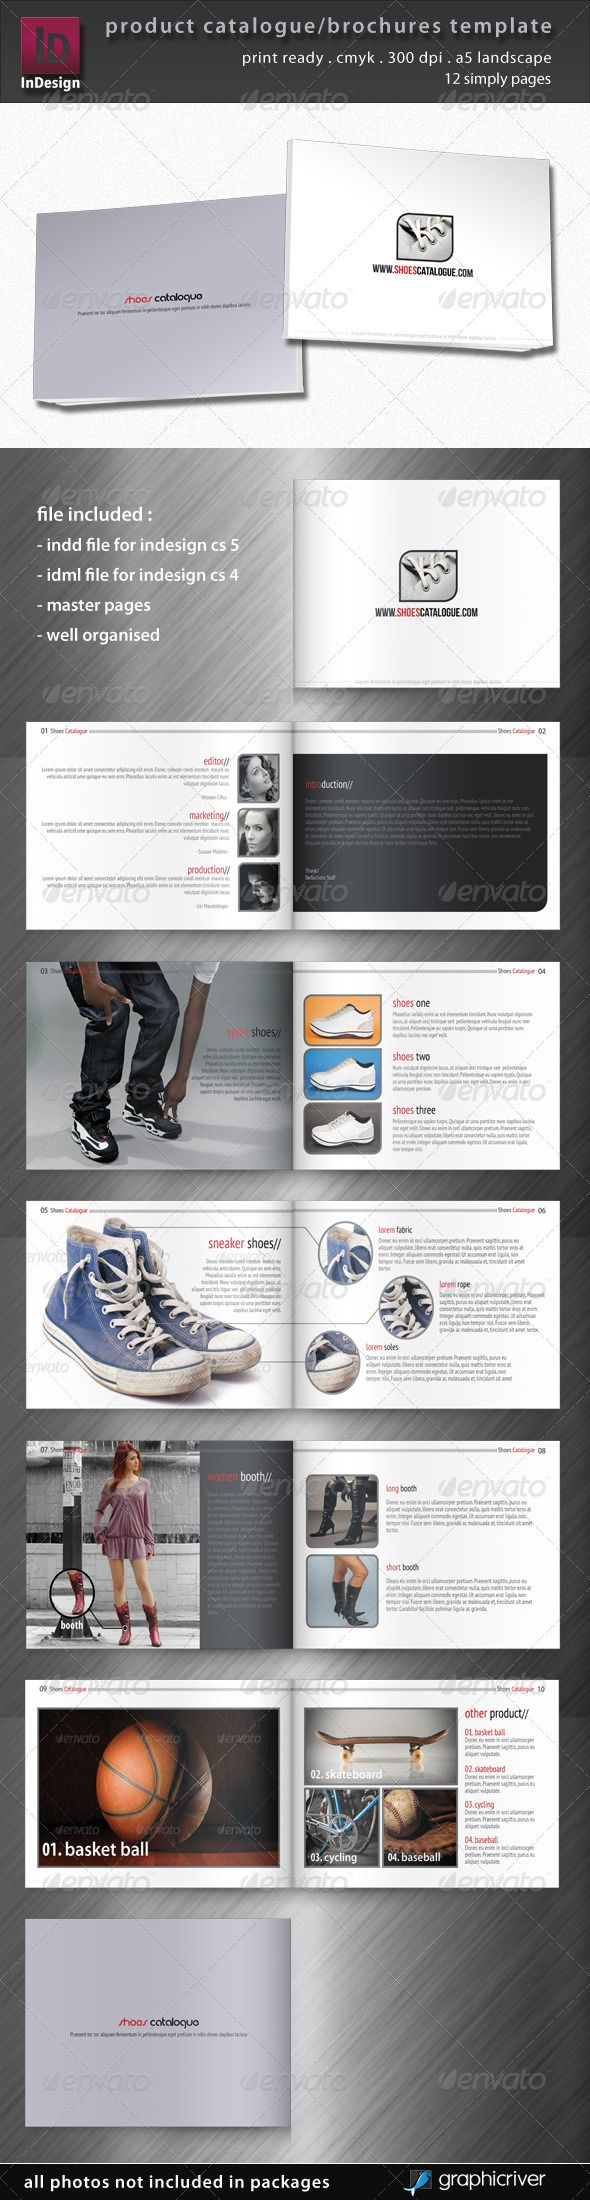 Product Catalogue/Brochure Template - GraphicRiver Item for Sale